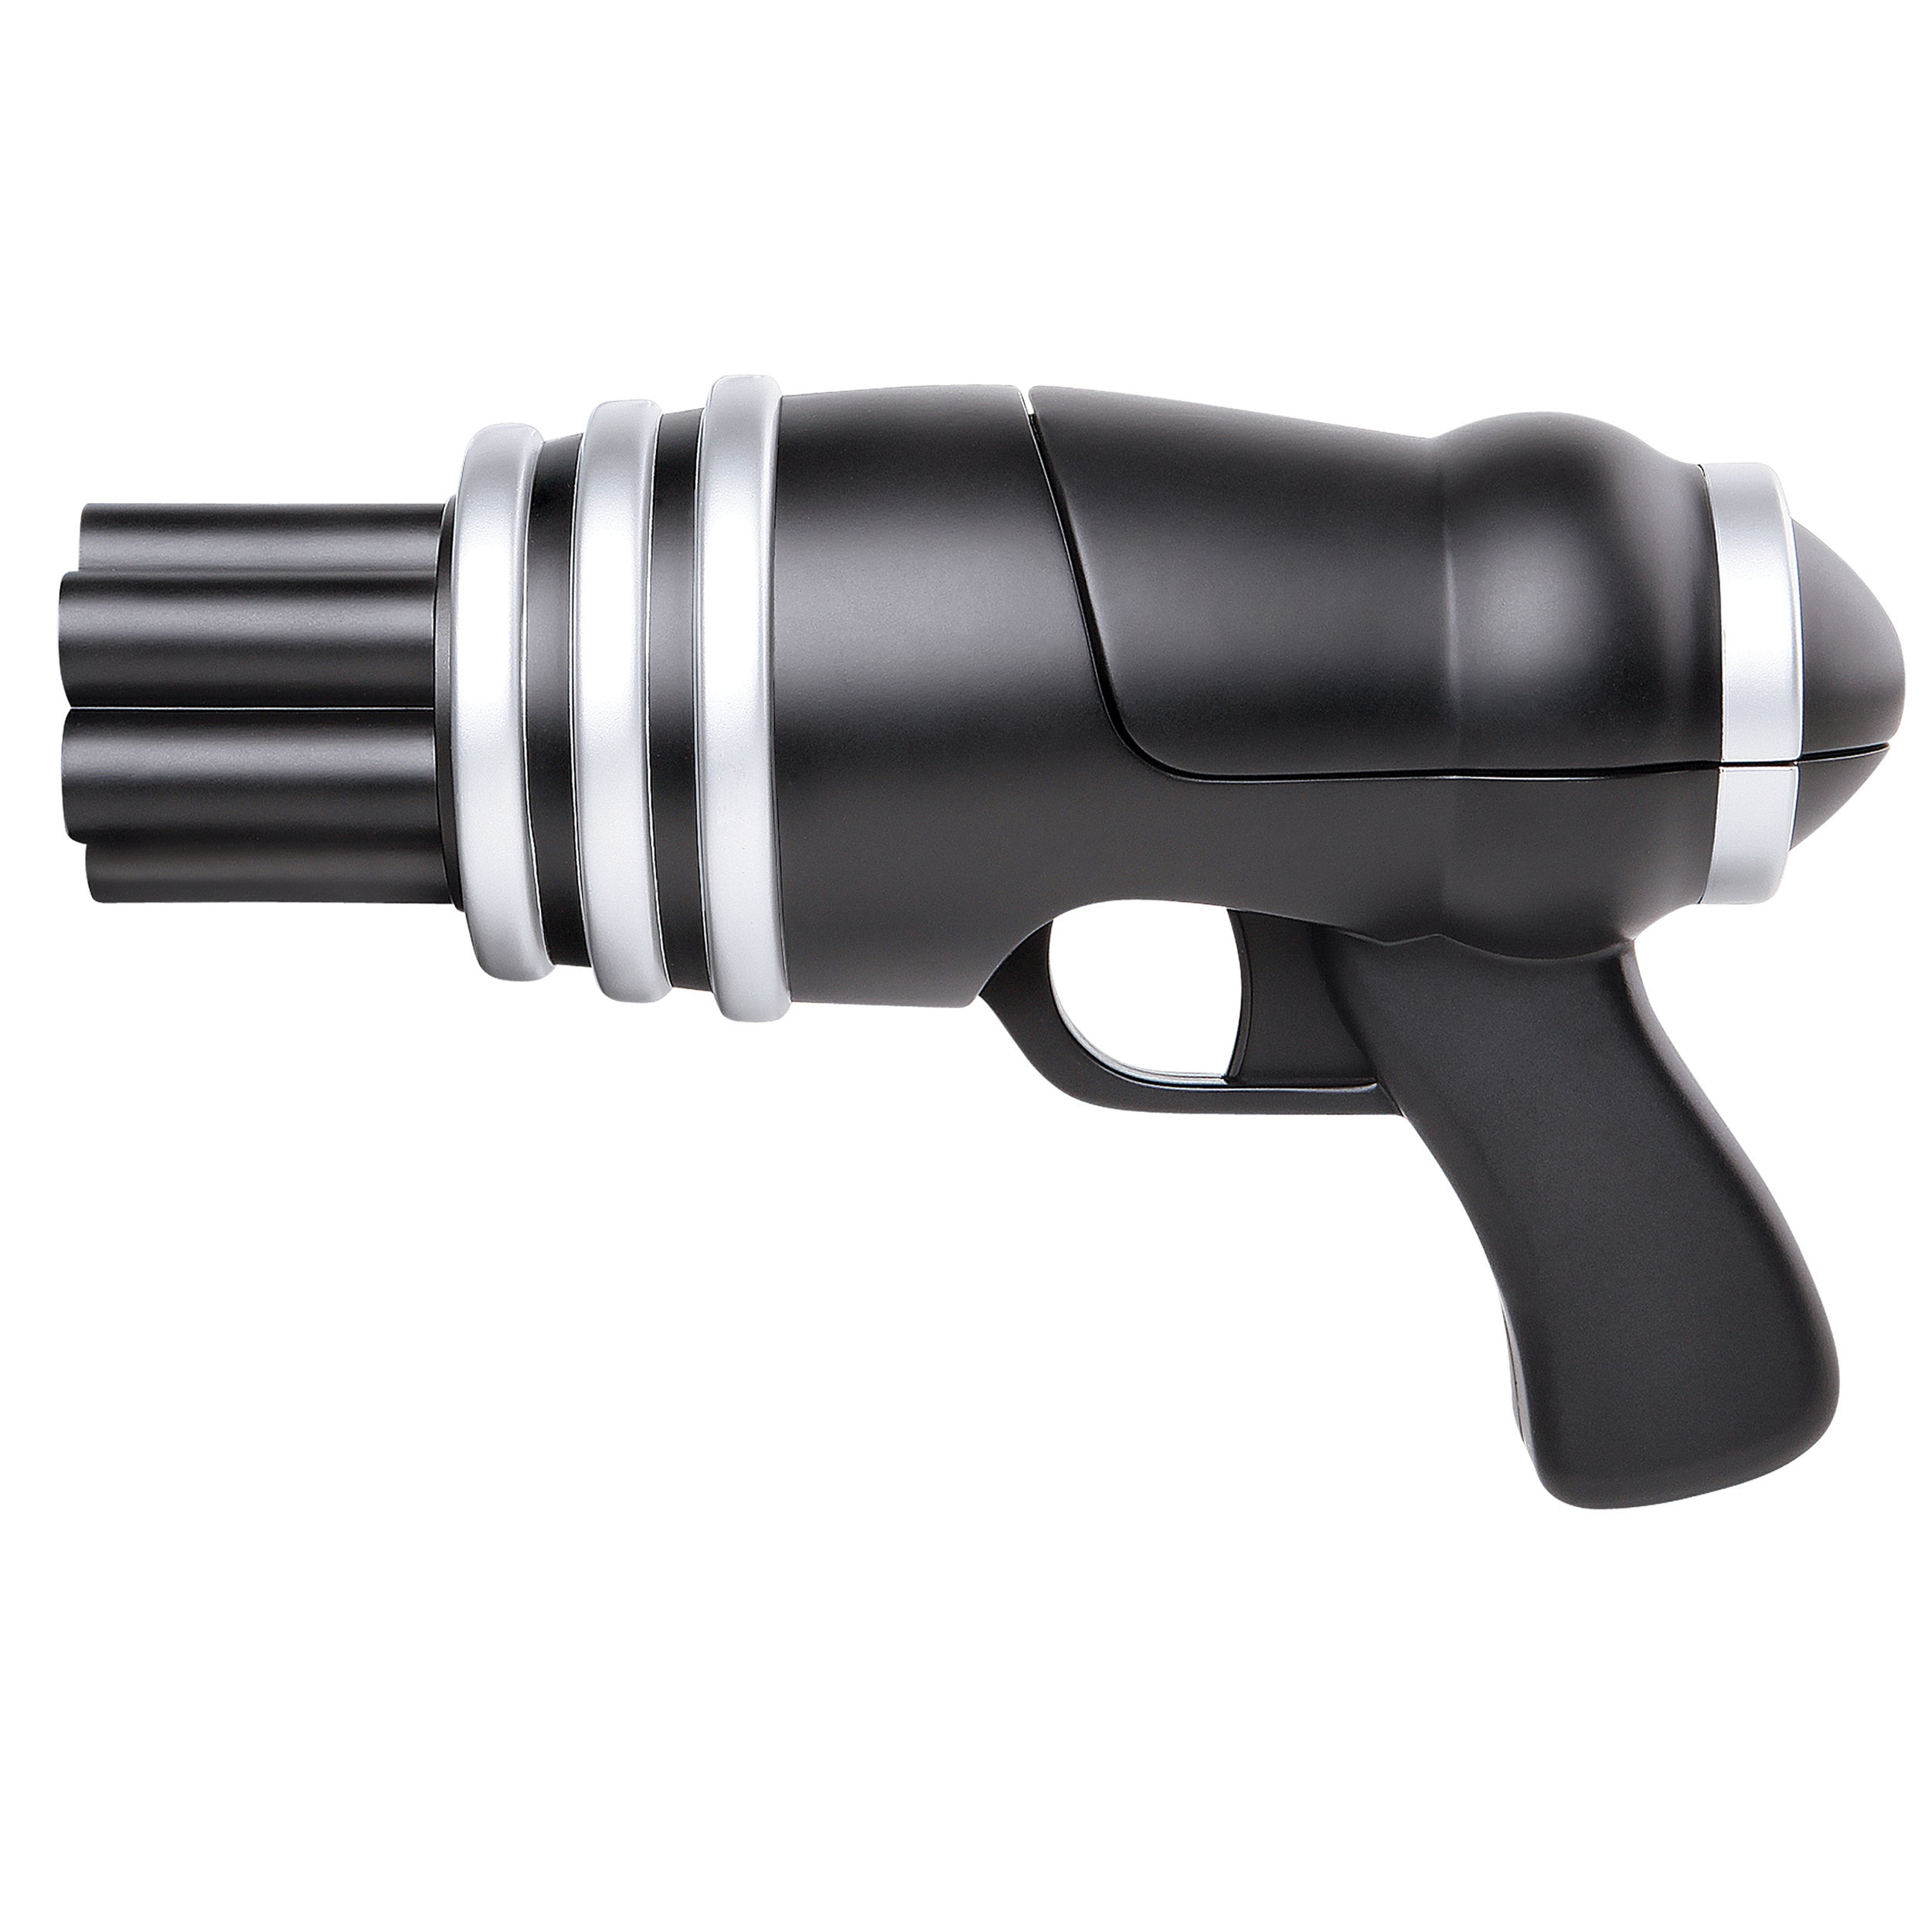 Black Series Hover Target Game   Free Shipping On Orders Over $45    Overstock.com   15703062